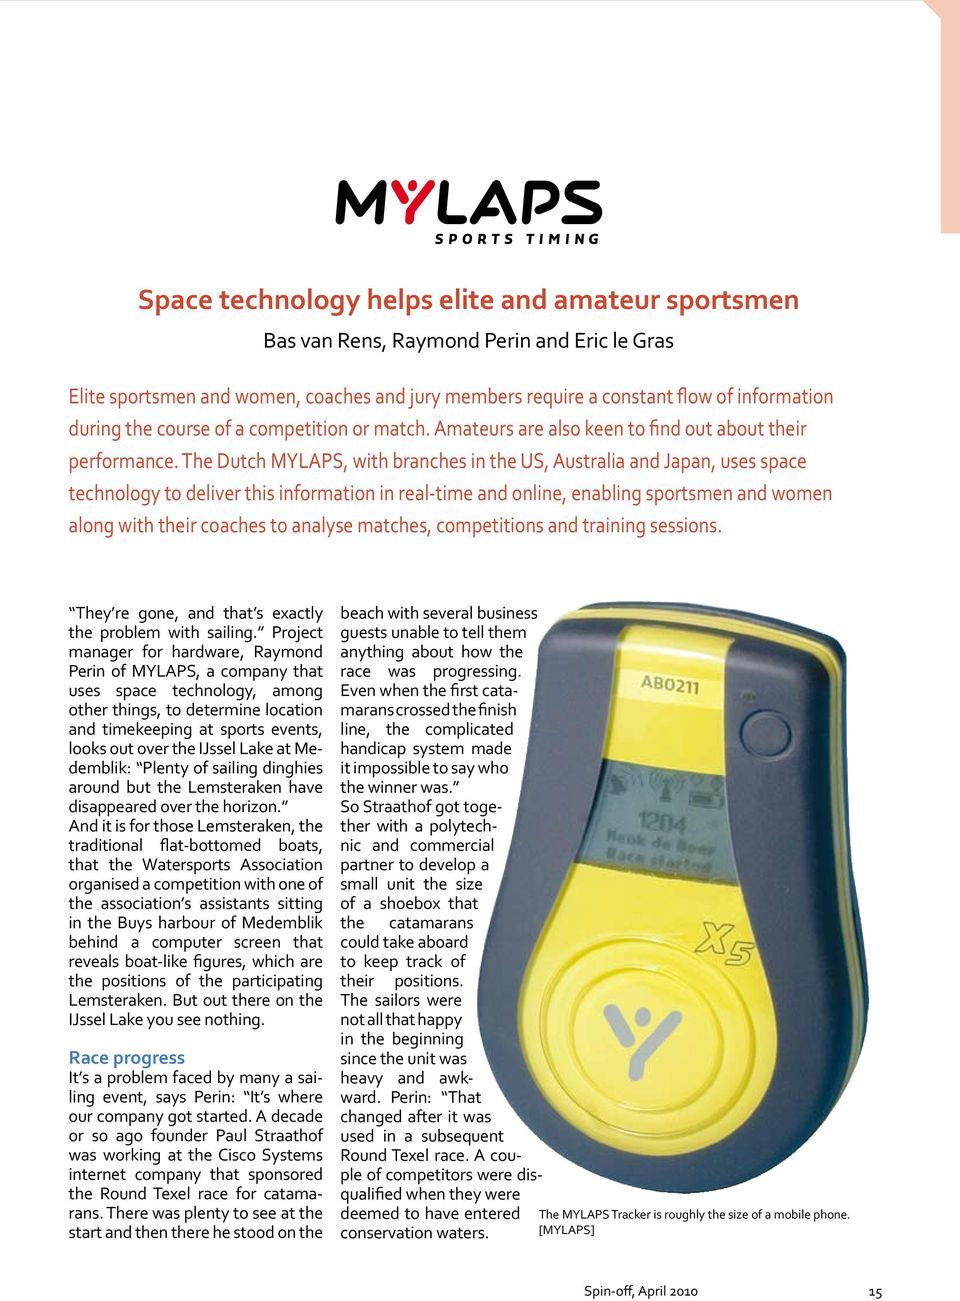 The Dutch MYLAPS, with branches in the US, Australia and Japan, uses space technology to deliver this information in real-time and online, enabling sportsmen and women along with their coaches to